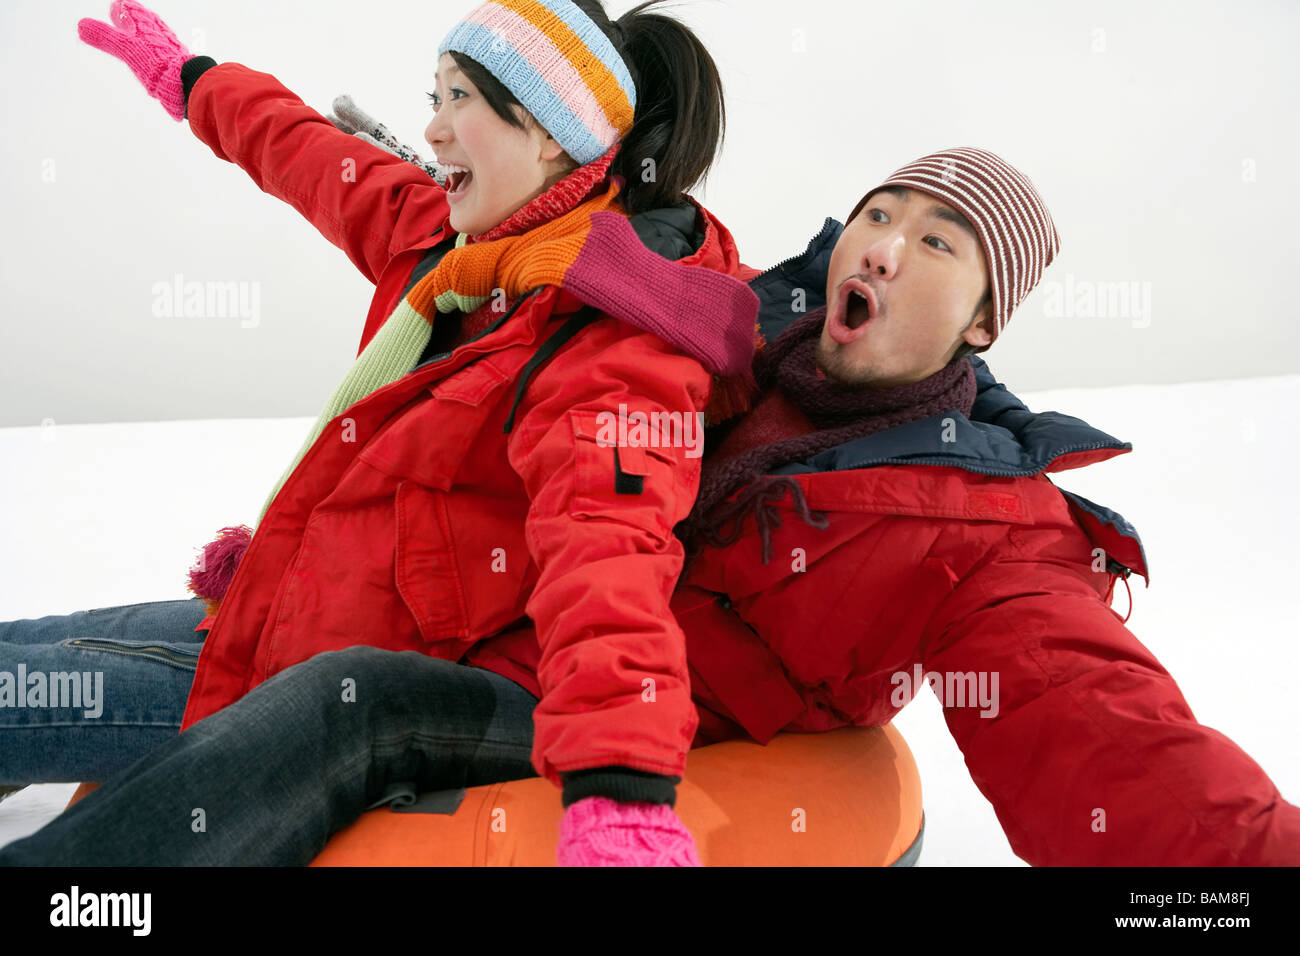 Couple Riding On Inflatable Snow Tube Stock Photo